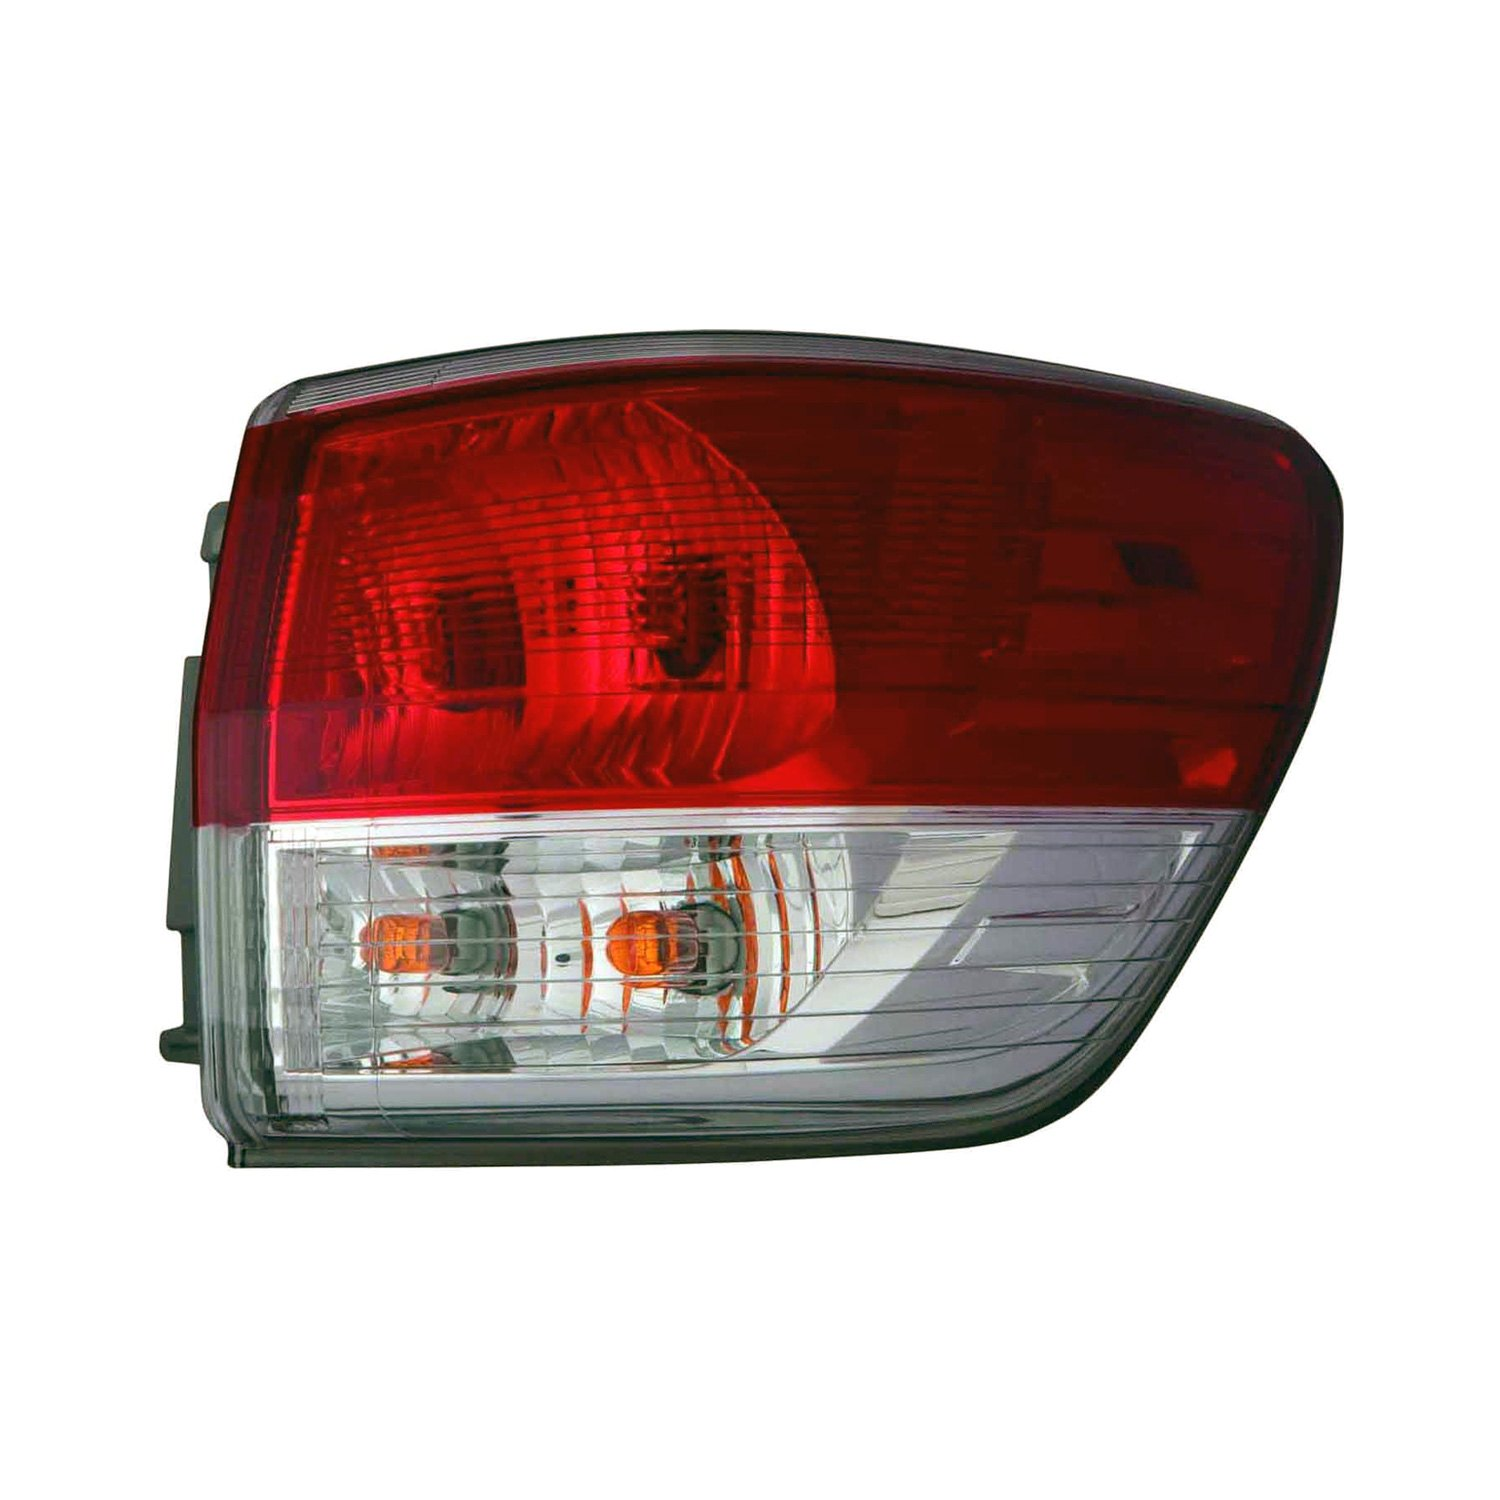 Details About For Nissan Pathfinder 13 16 Replace Penger Side Outer Replacement Tail Light